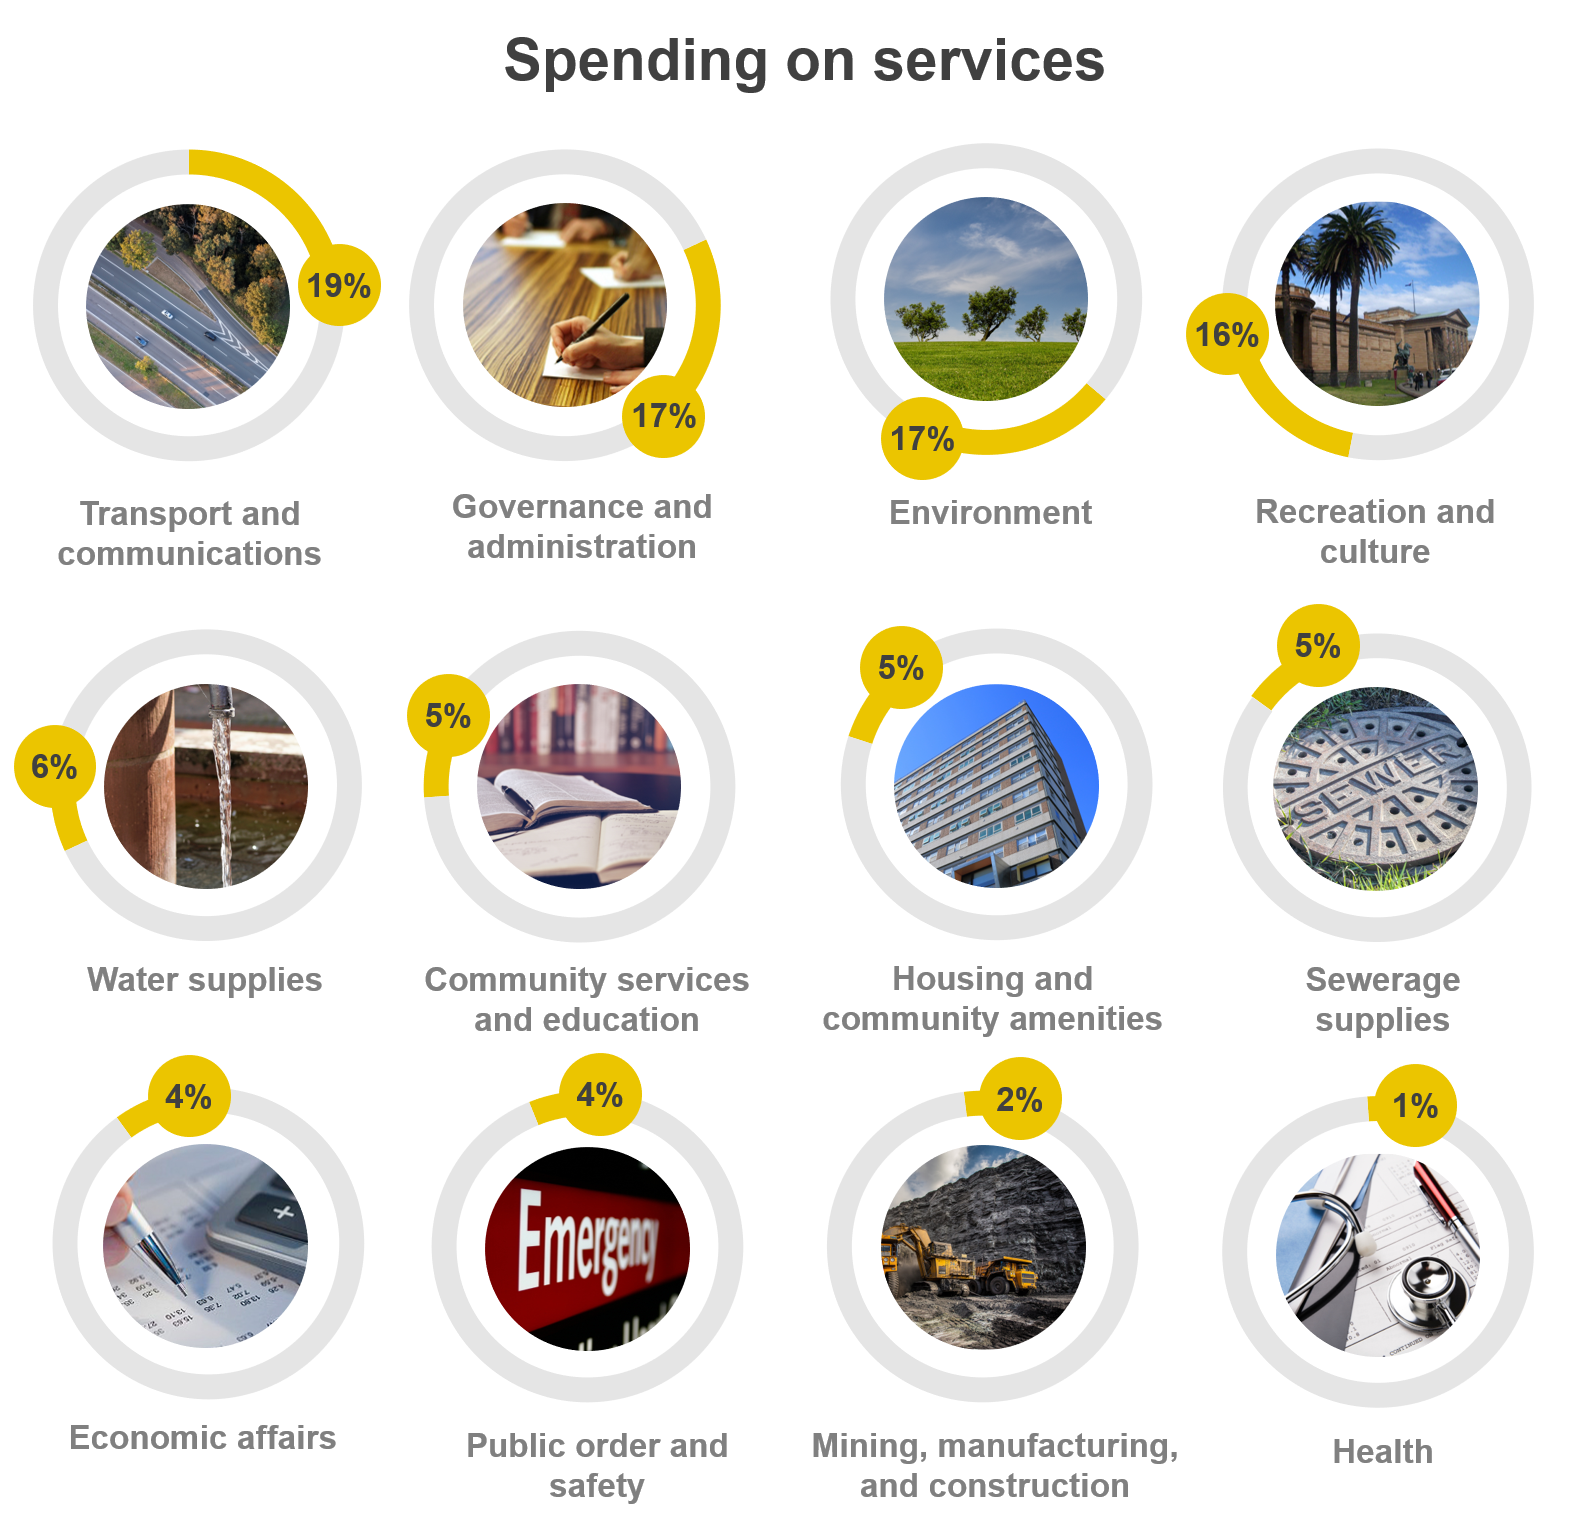 The following chart shows the spending of services by councils. For an accessible version of this chart, email communications@audit.nsw.gov.au